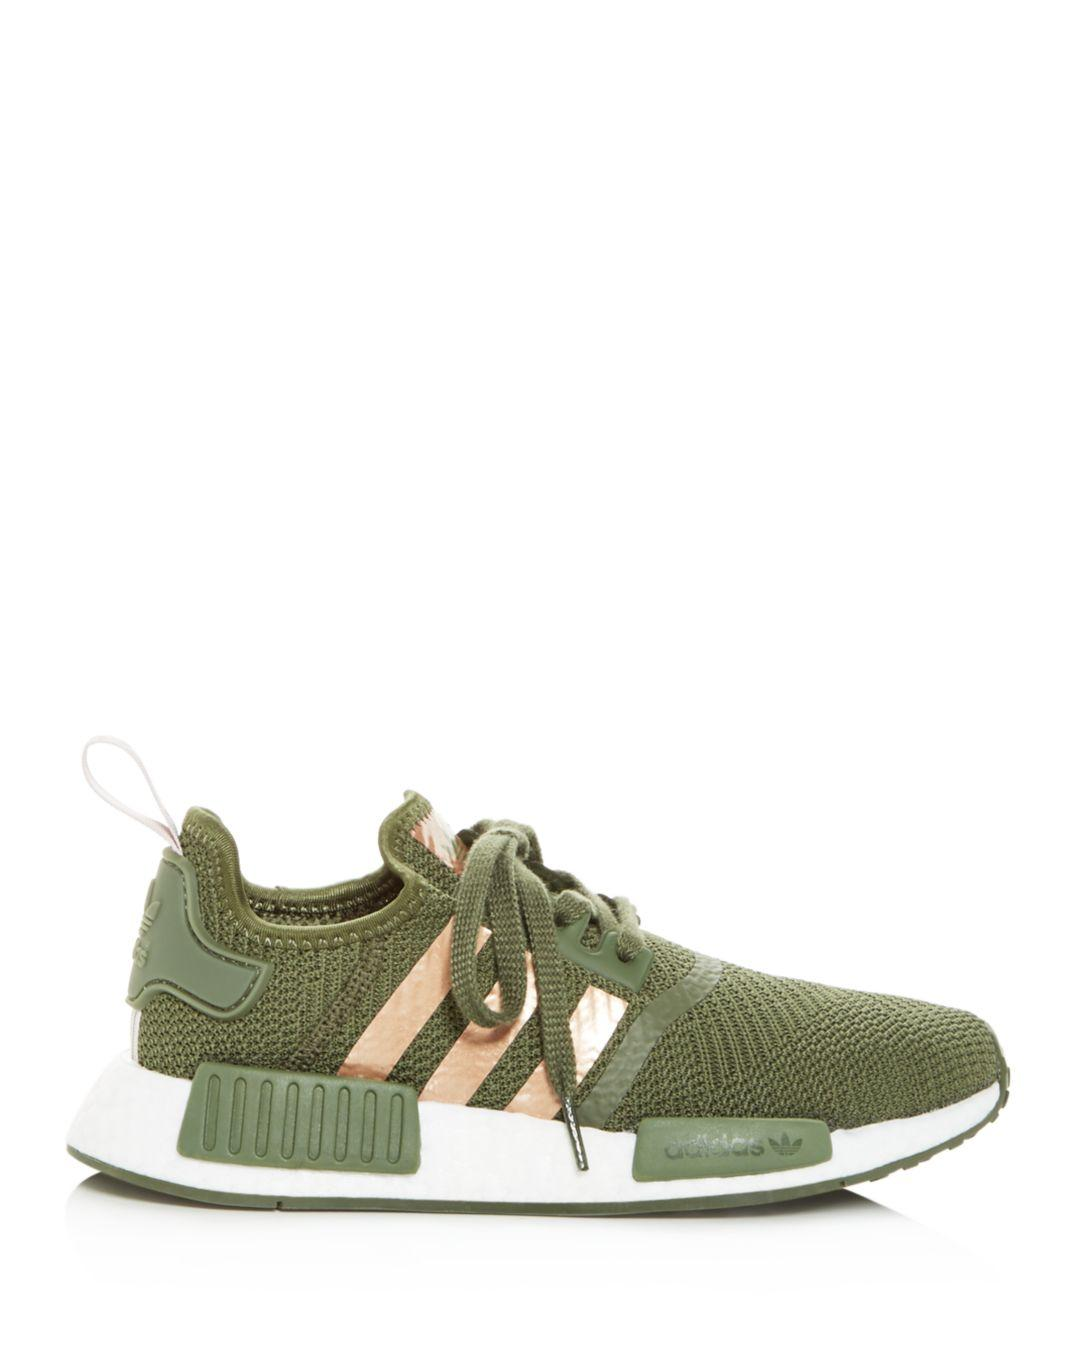 22b78929f Lyst - adidas Women s Nmd R1 Knit Lace Up Sneakers in Green